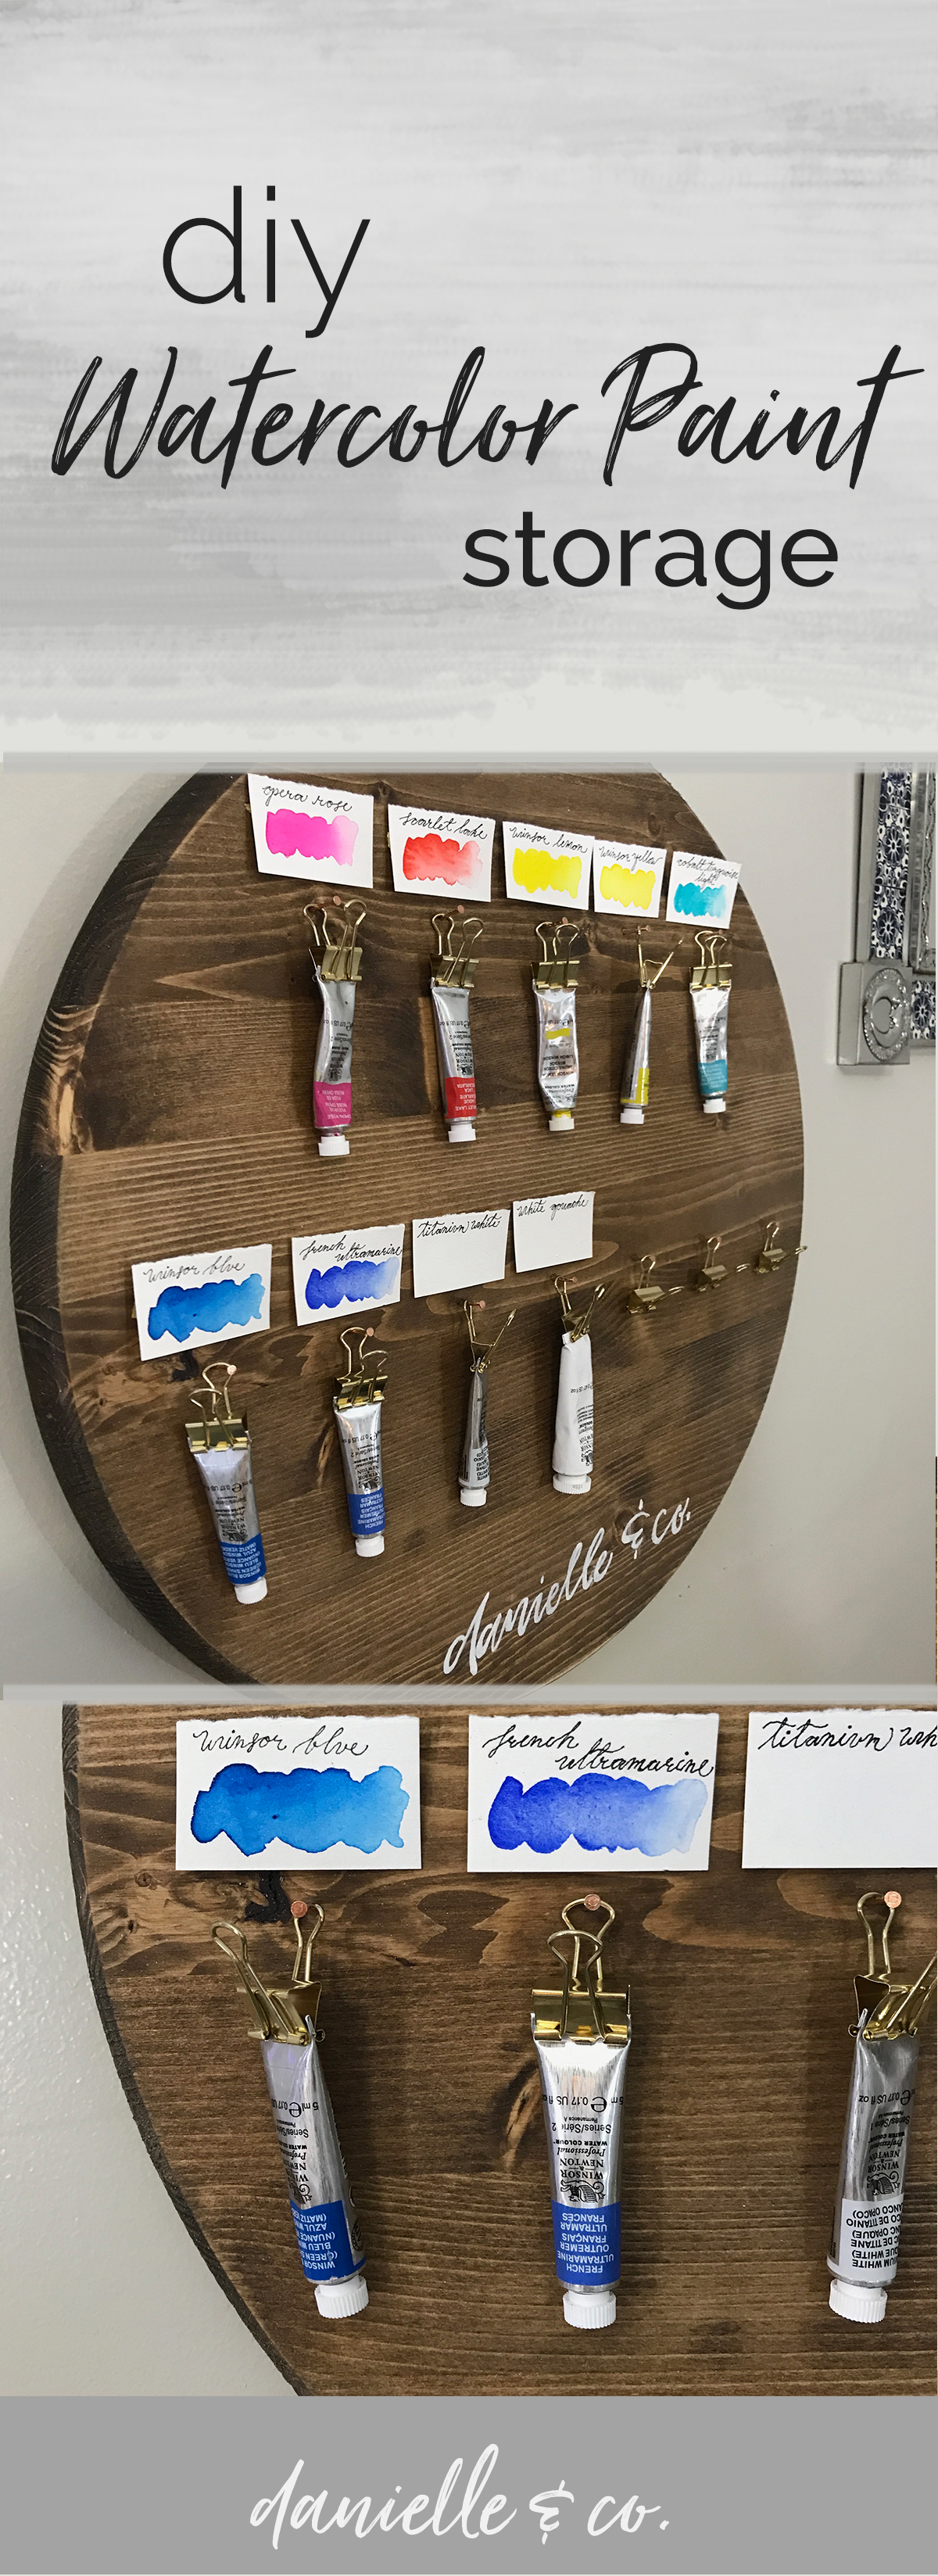 A DIY watercolor paint storage, affordable and easy to organize watercolor tube paints! From danielleandco.com